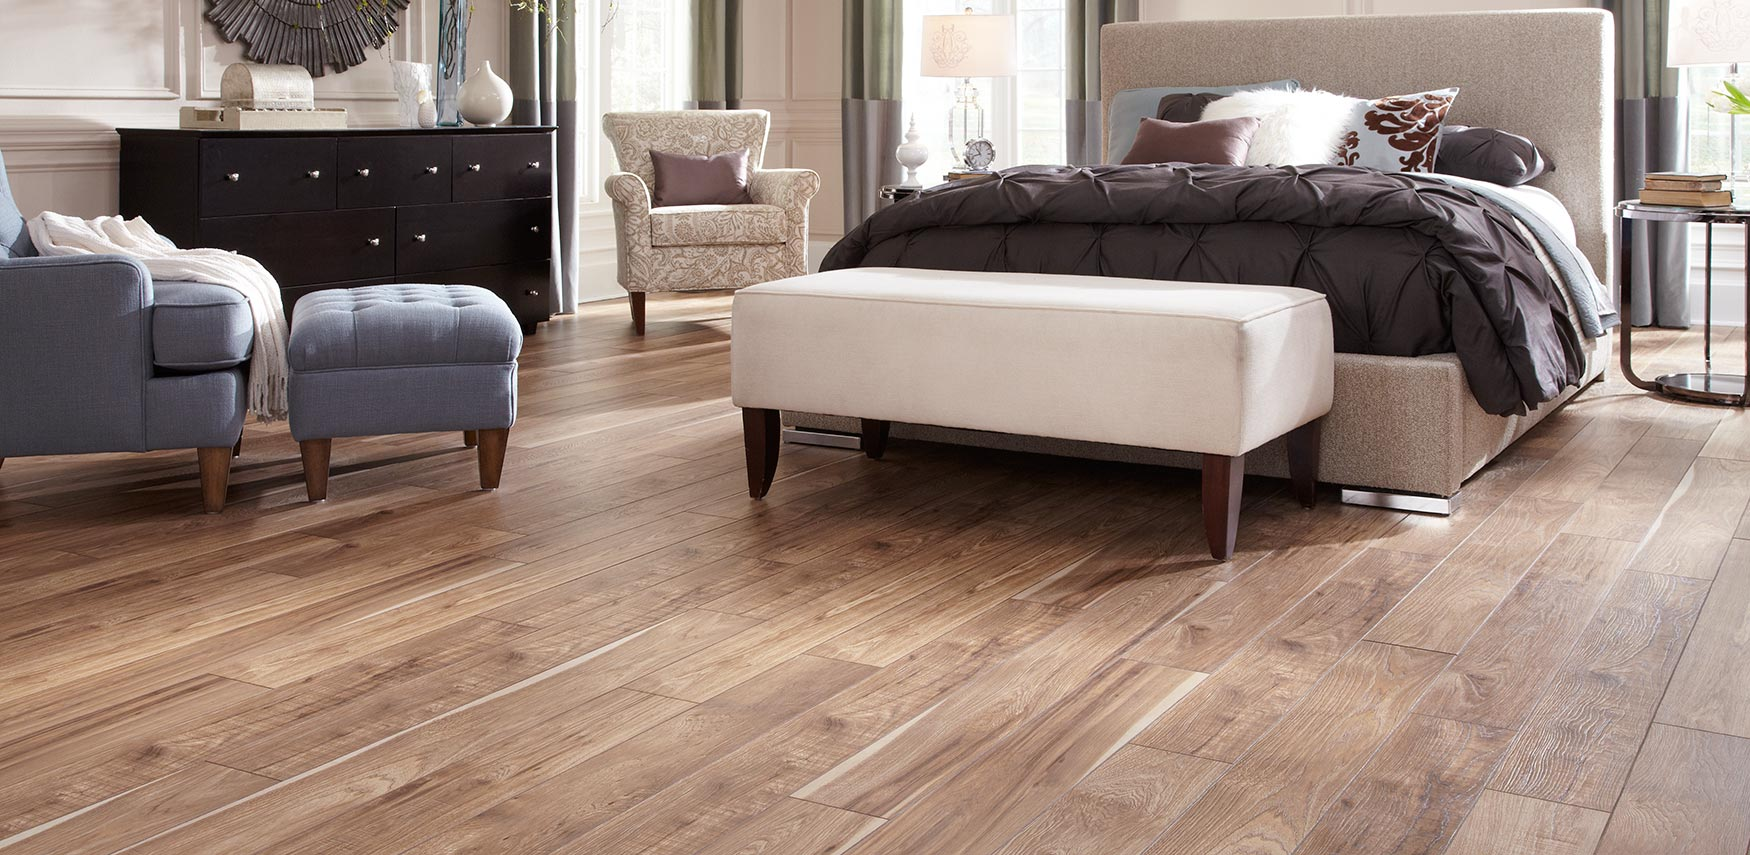 Mannington Flooring – Resilient, Laminate, Hardwood, Luxury Vinyl ...